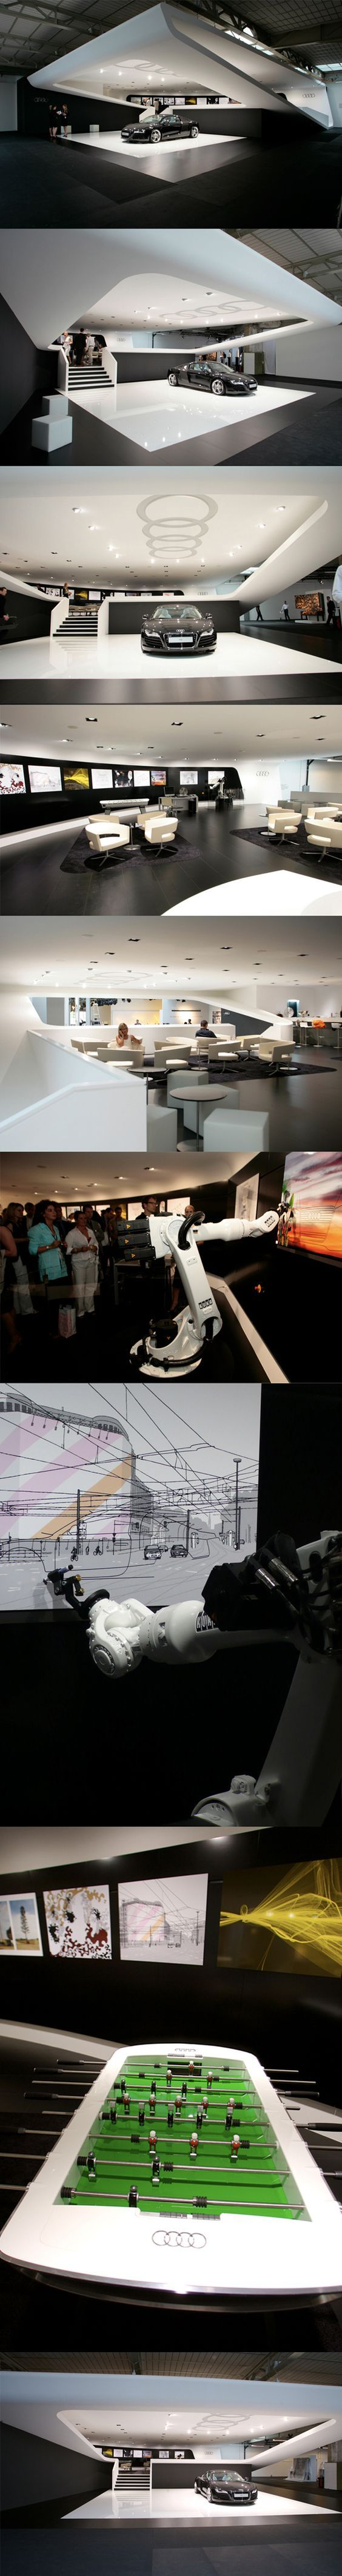 Audi / Art Basel 2008 | At the Design Miami/Basel Audi presents itself as creative manufacturer with trendsetting design.: